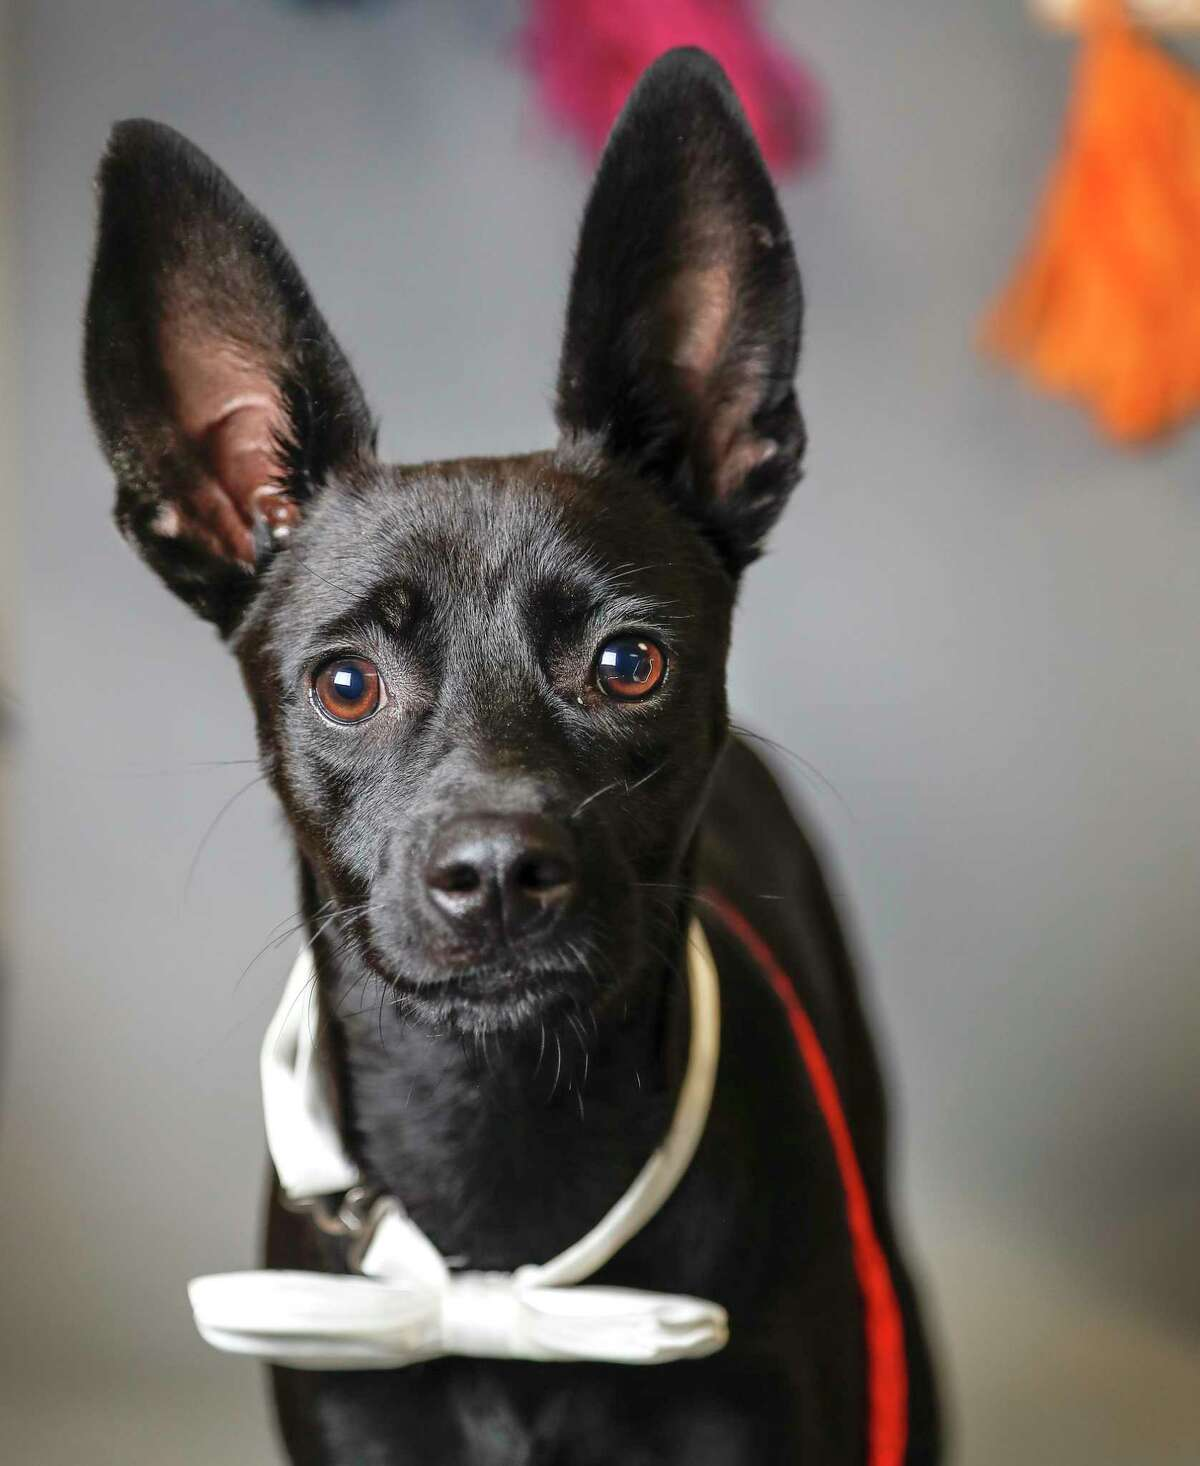 Marcos is a 6-month-old, male, Fox Terrier mix available for adoption at the Harris County Animal Shelter, in Houston. (Animal ID: A532727) Photographed Tuesday, August 20, 2019. Marcos is a lovebug. He was originally adopted as a young puppy from the shelter, but this 22 pound guy was returned because he was